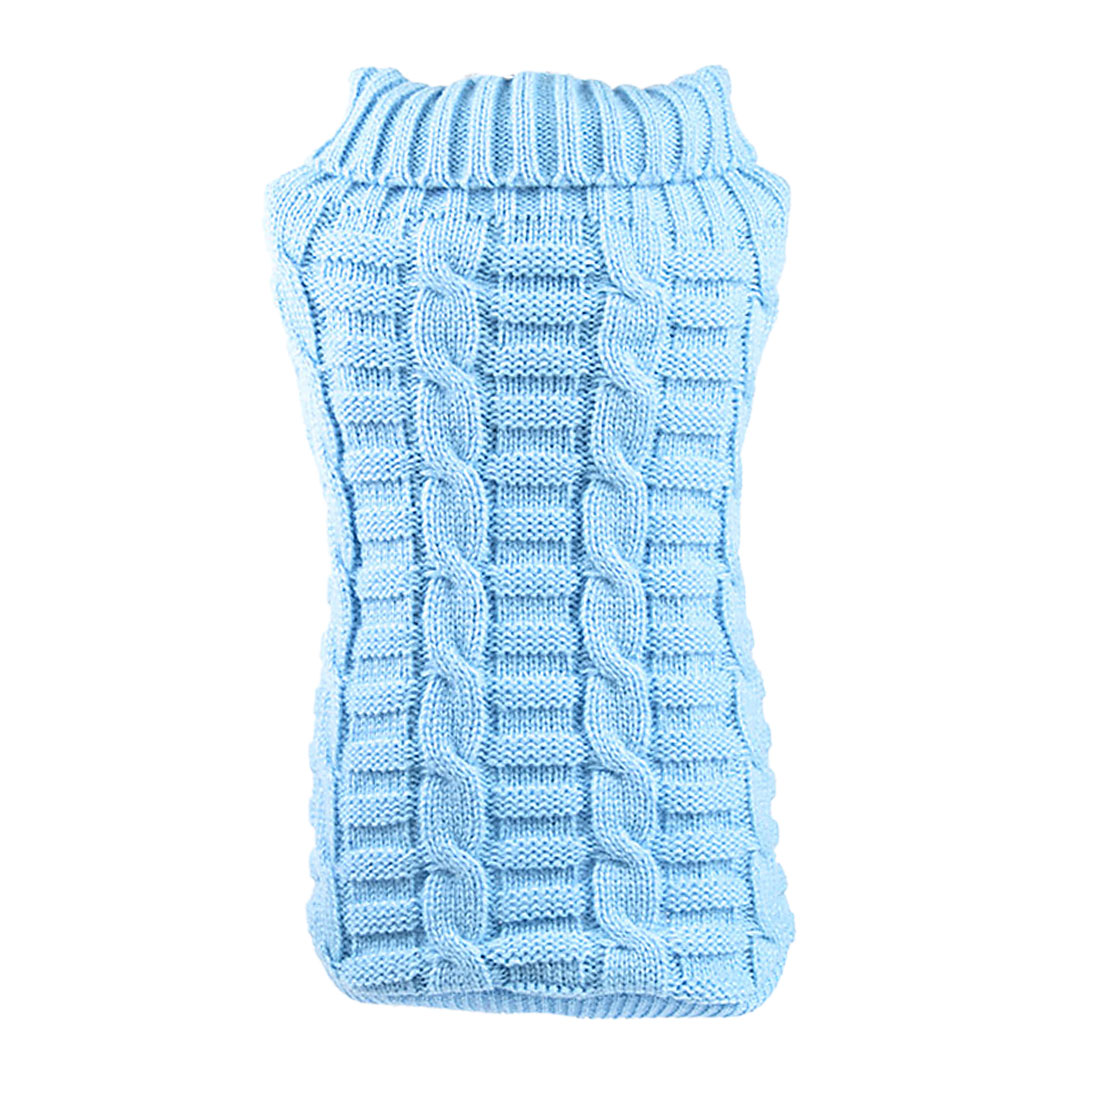 Small Pet Dog Clothes Puppy Cat Sweater Knit Coat Apparel Costume Light Blue, M